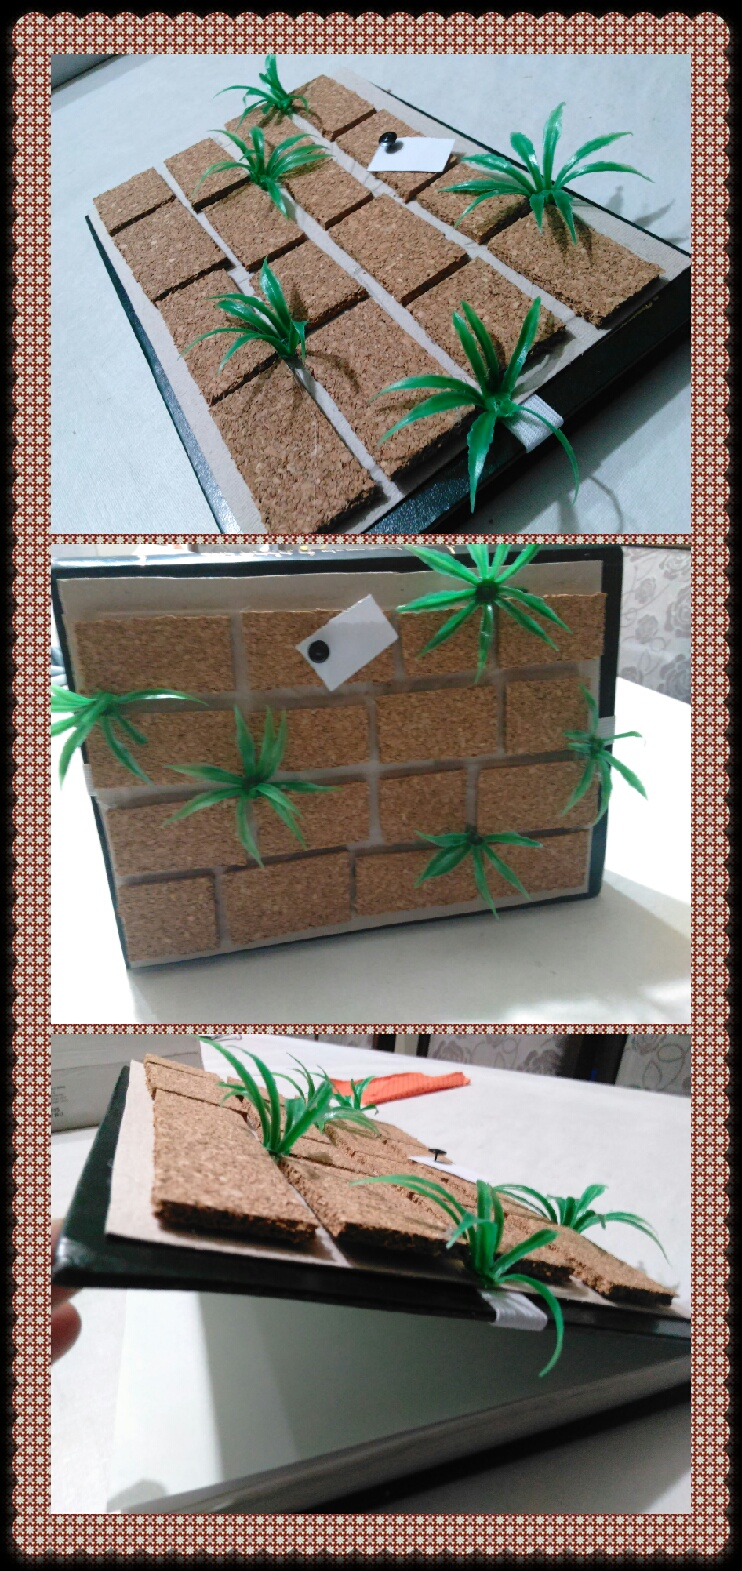 Kotel craft (book-sidur cover/frame) Hang notes with push pins and attach elastic so it can hold ...